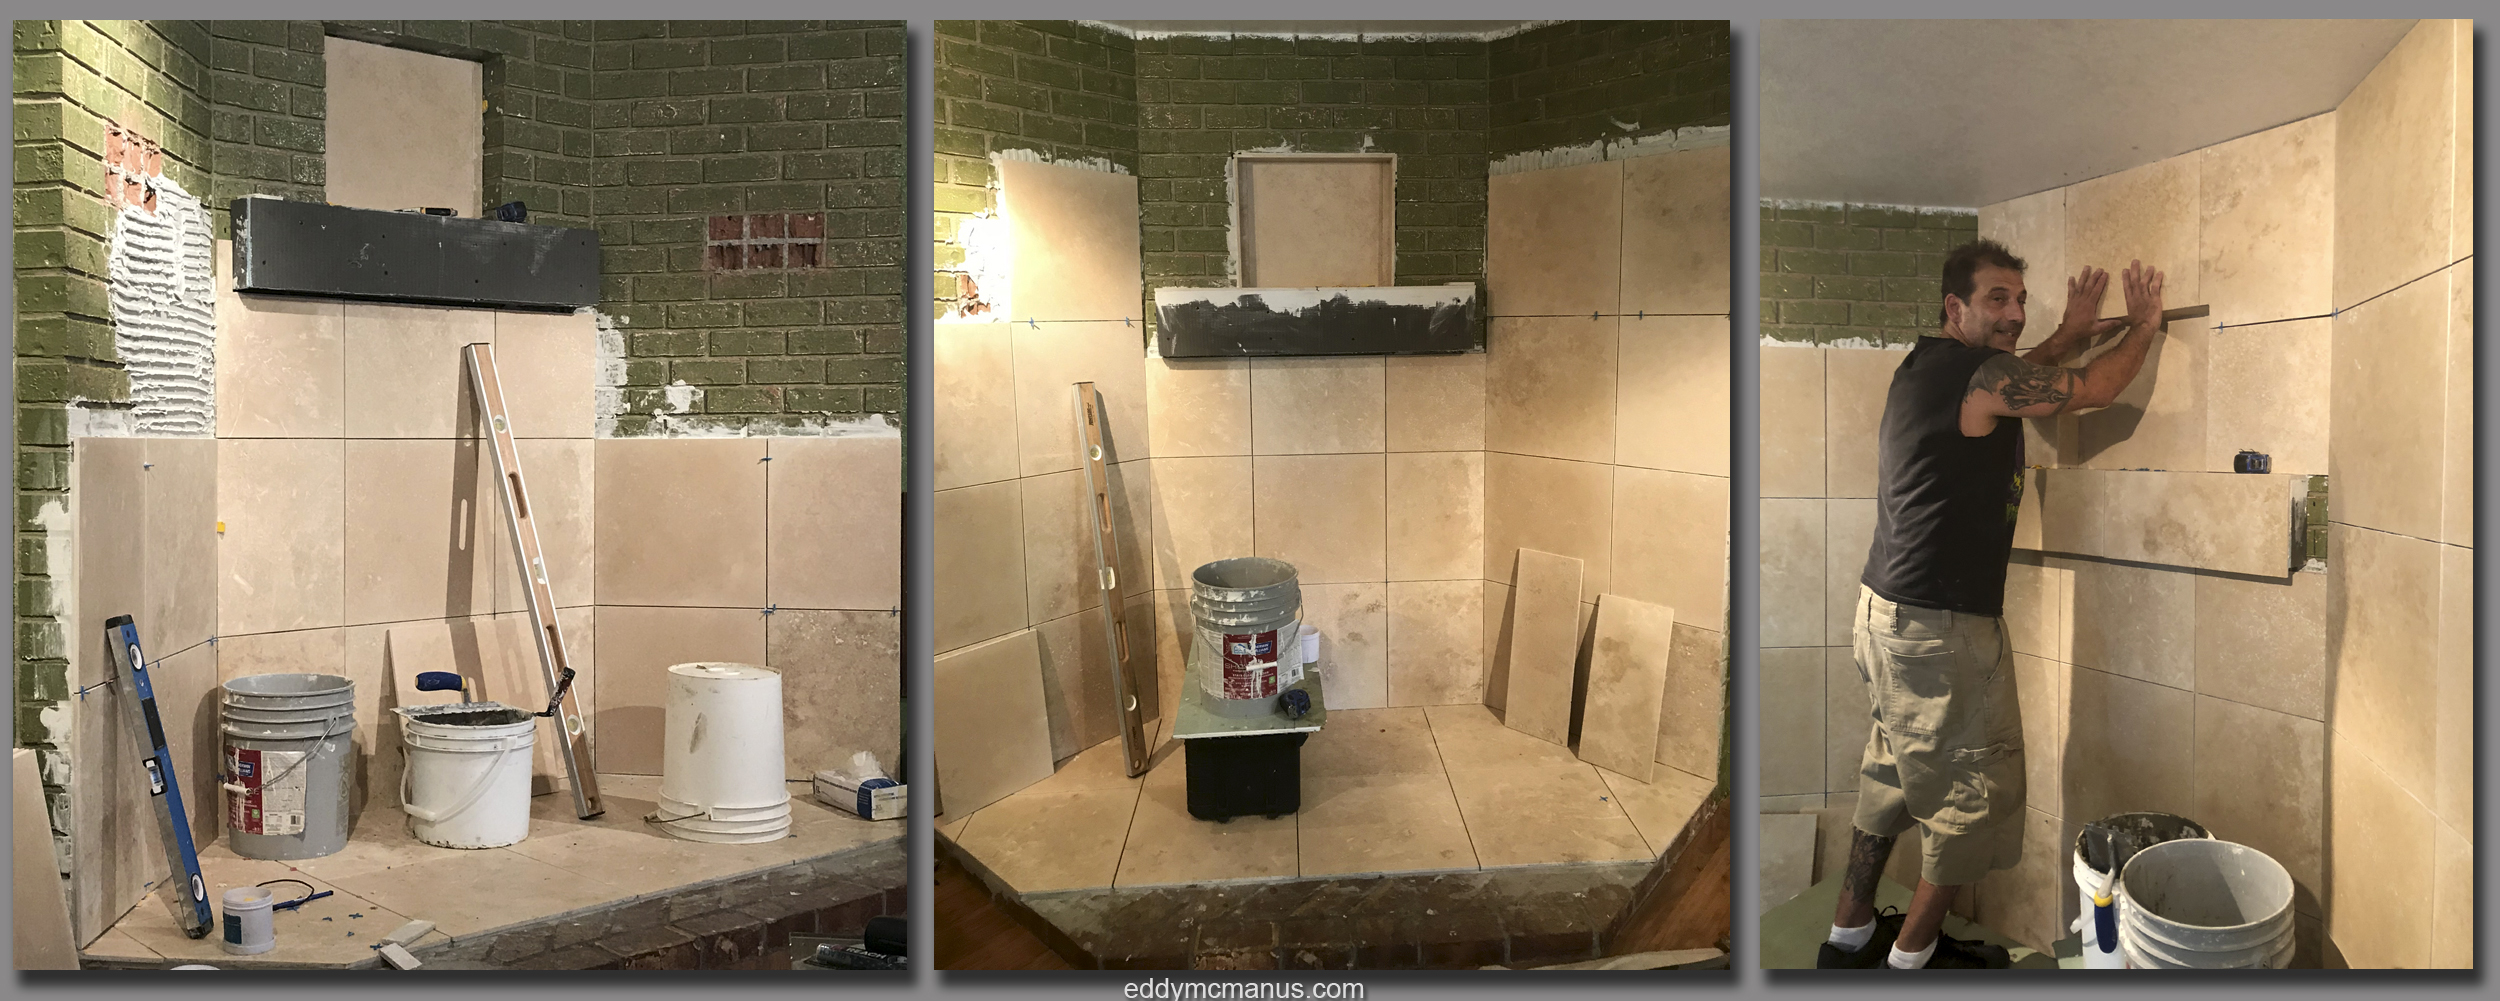 During - Applying Travertine Tile Remodeling Project